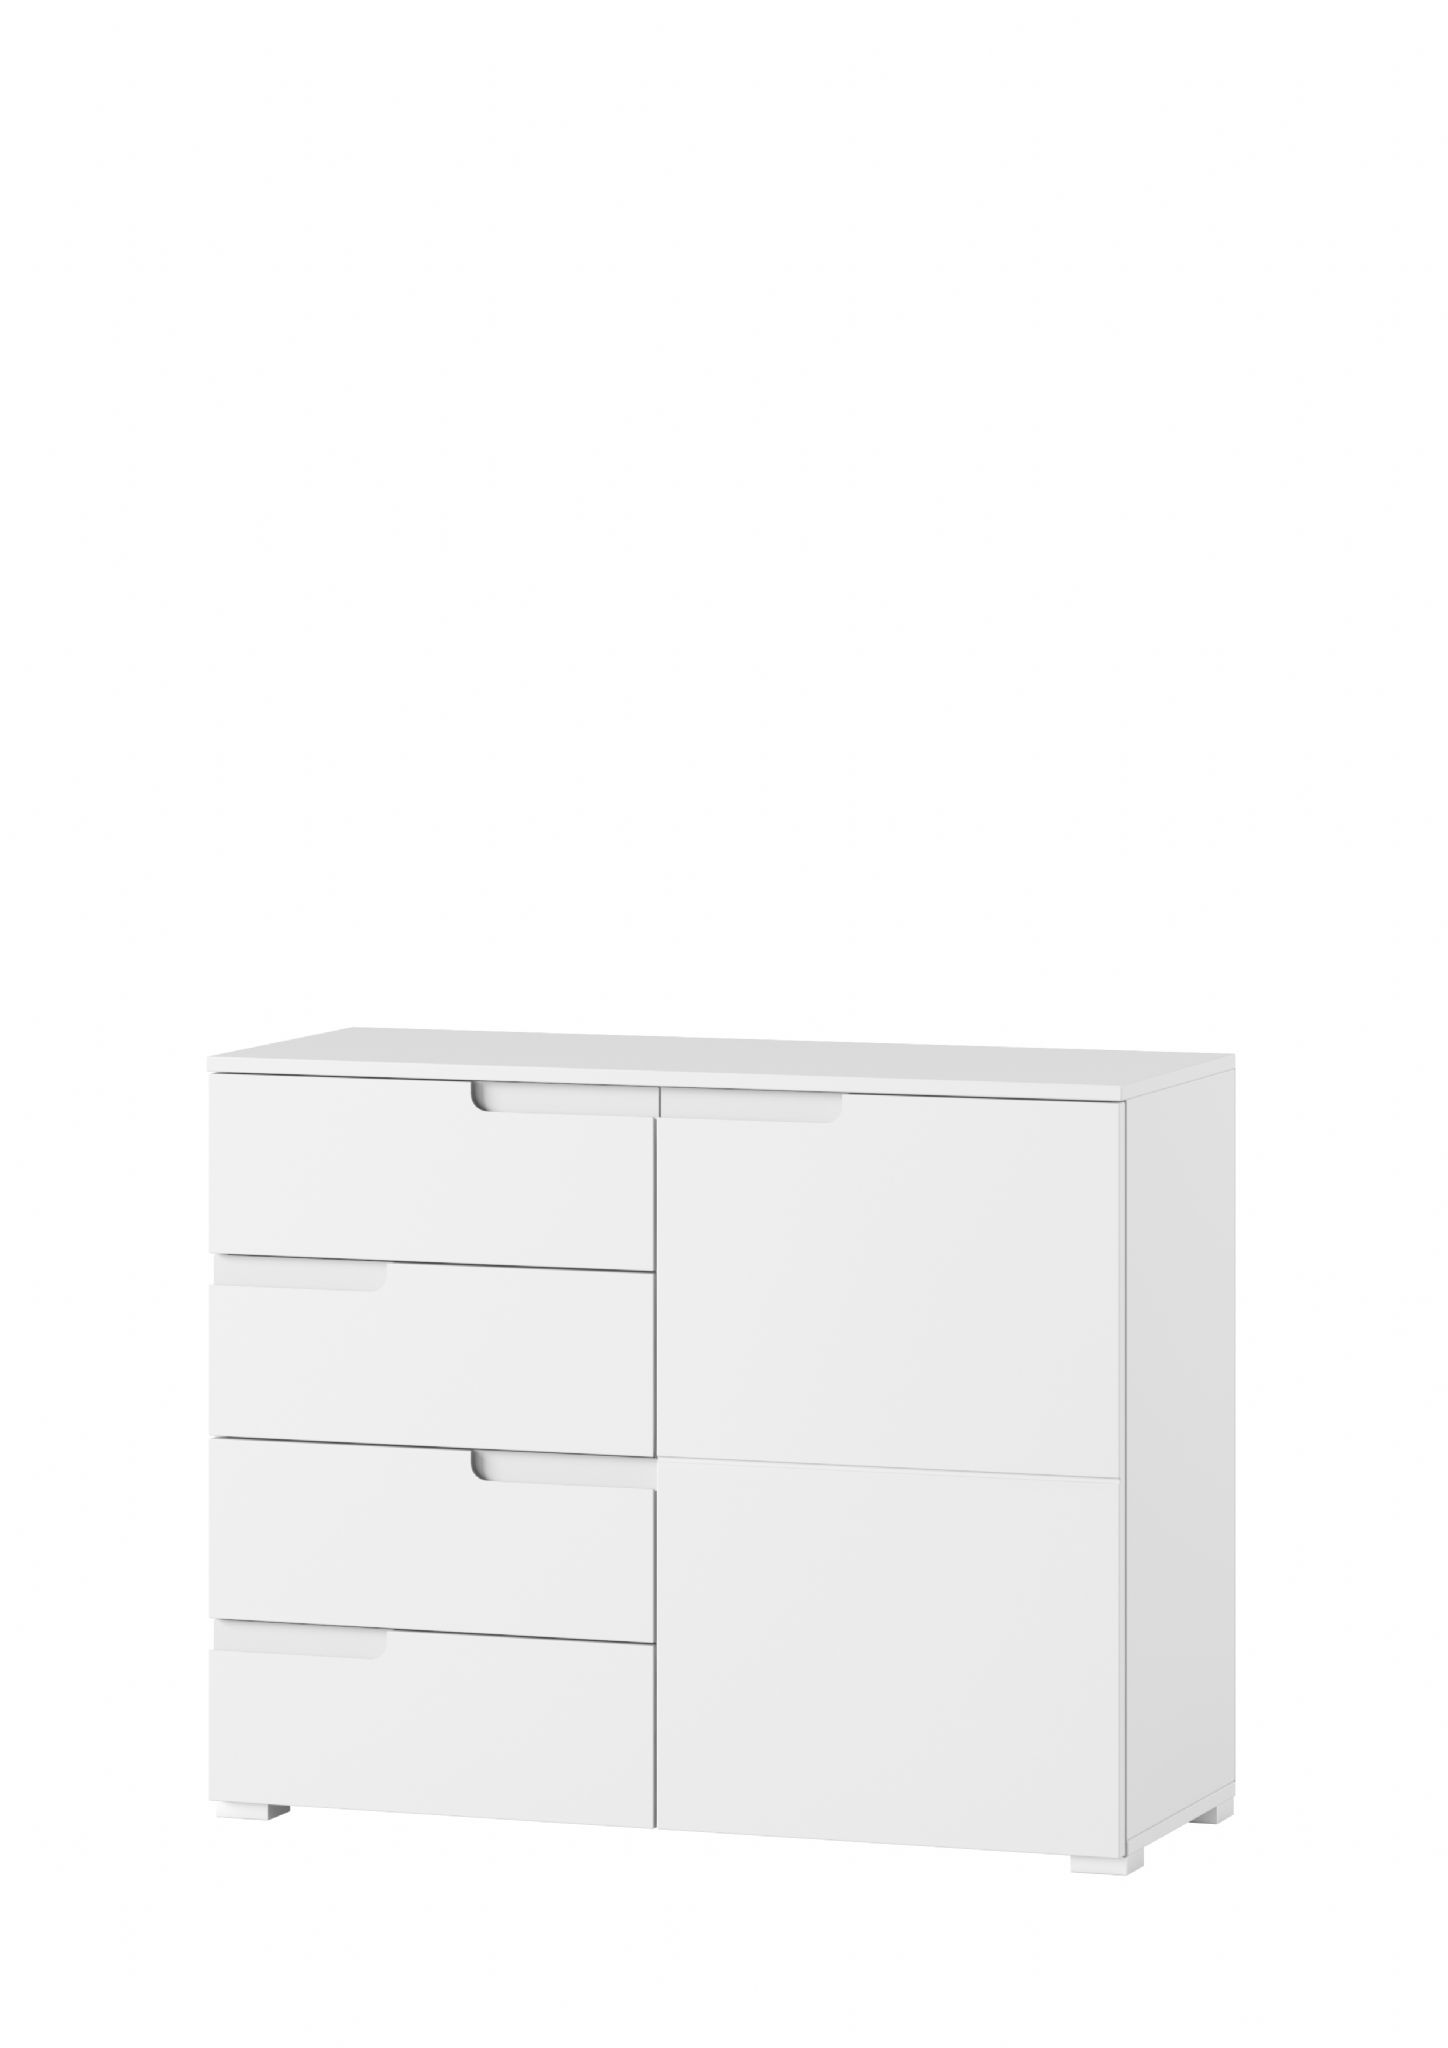 Cellini White Gloss Small Compact Sideboard